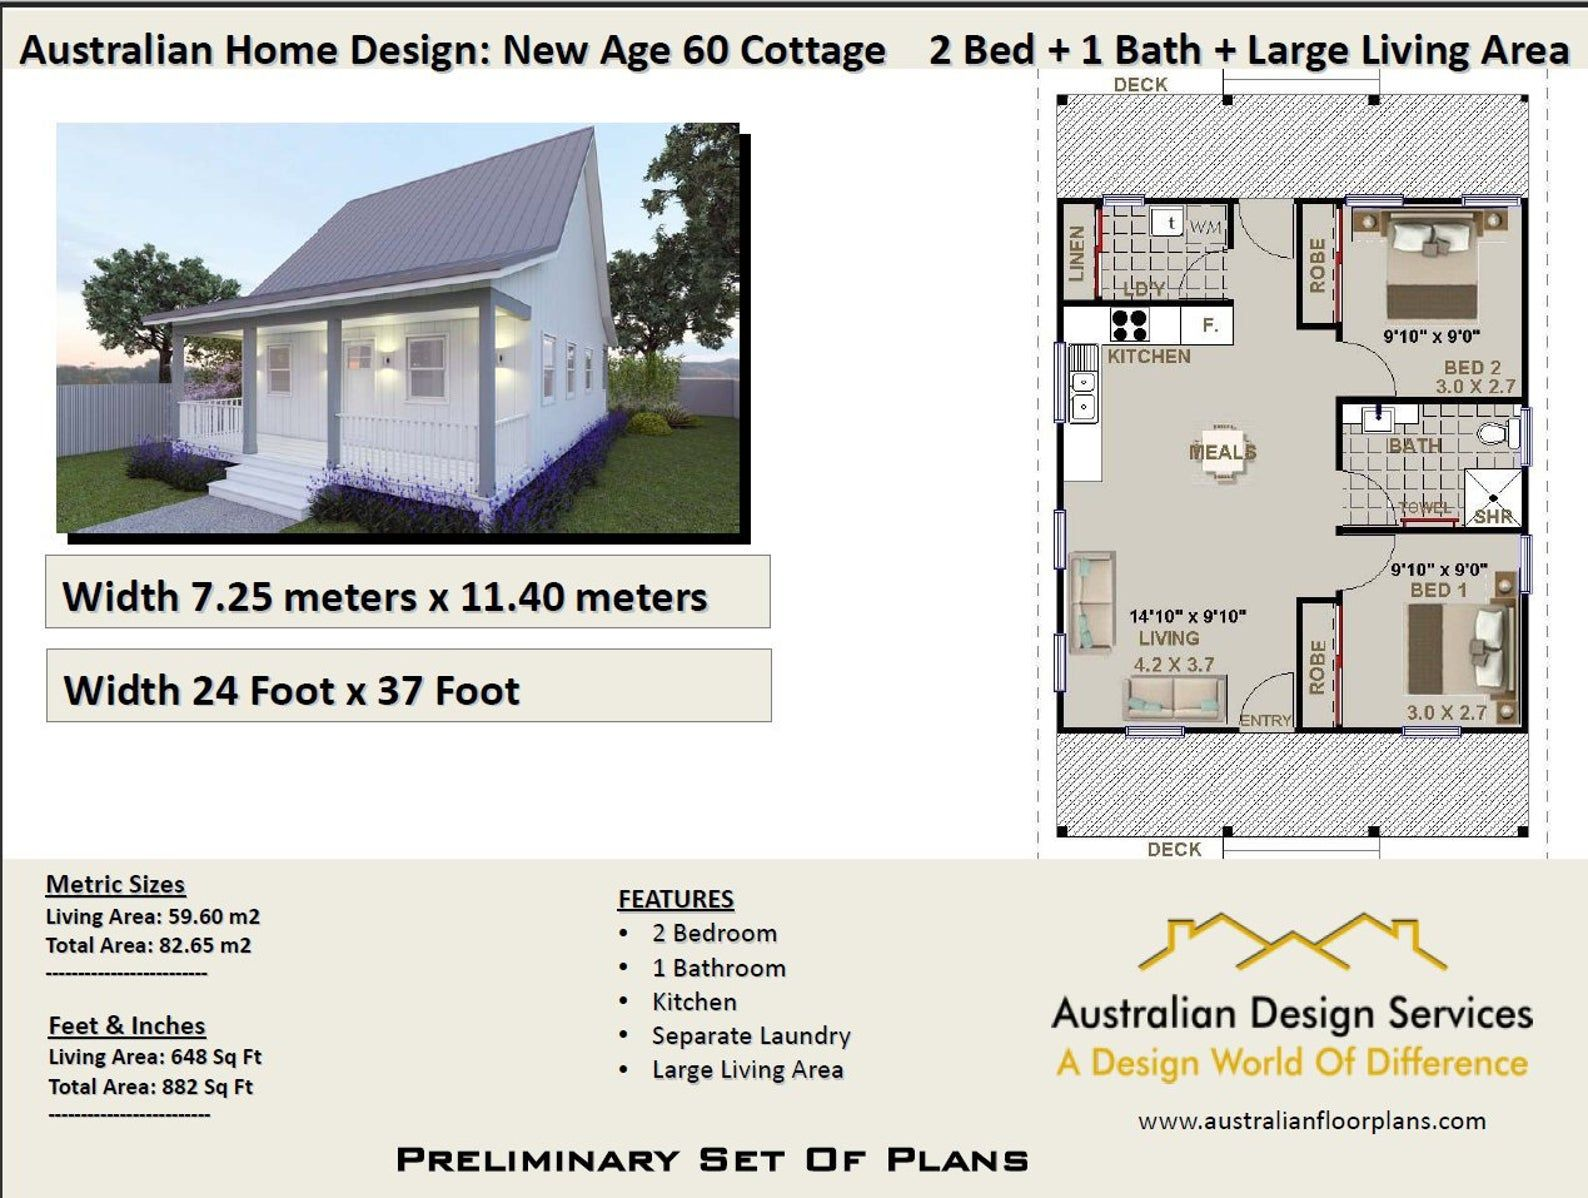 Small Cottage House Plan 59 M2 Living Area Or Total 82 65 M2 Etsy House Plans Australia Small Cottage Homes Small Cottage House Plans